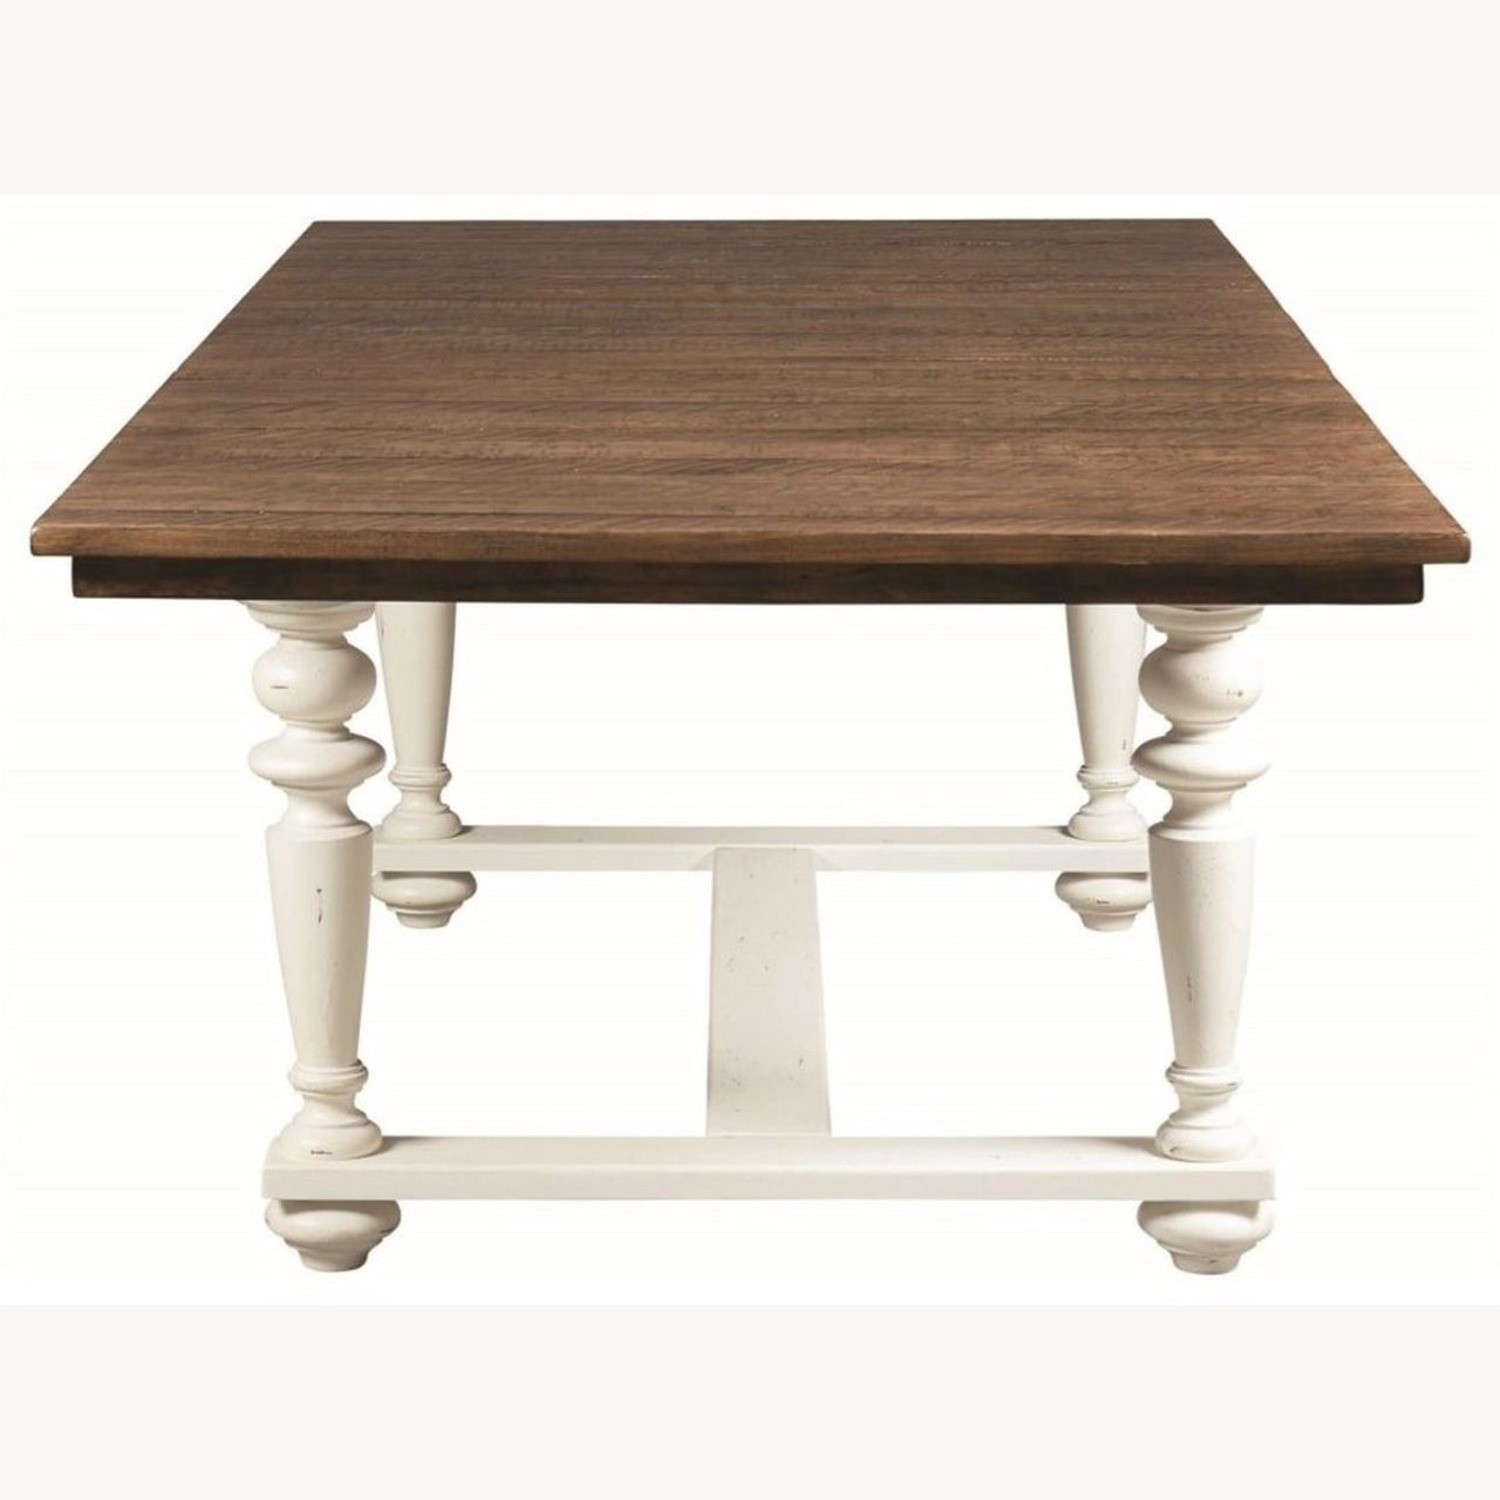 Rustic Dining Table In Vintage White - image-1